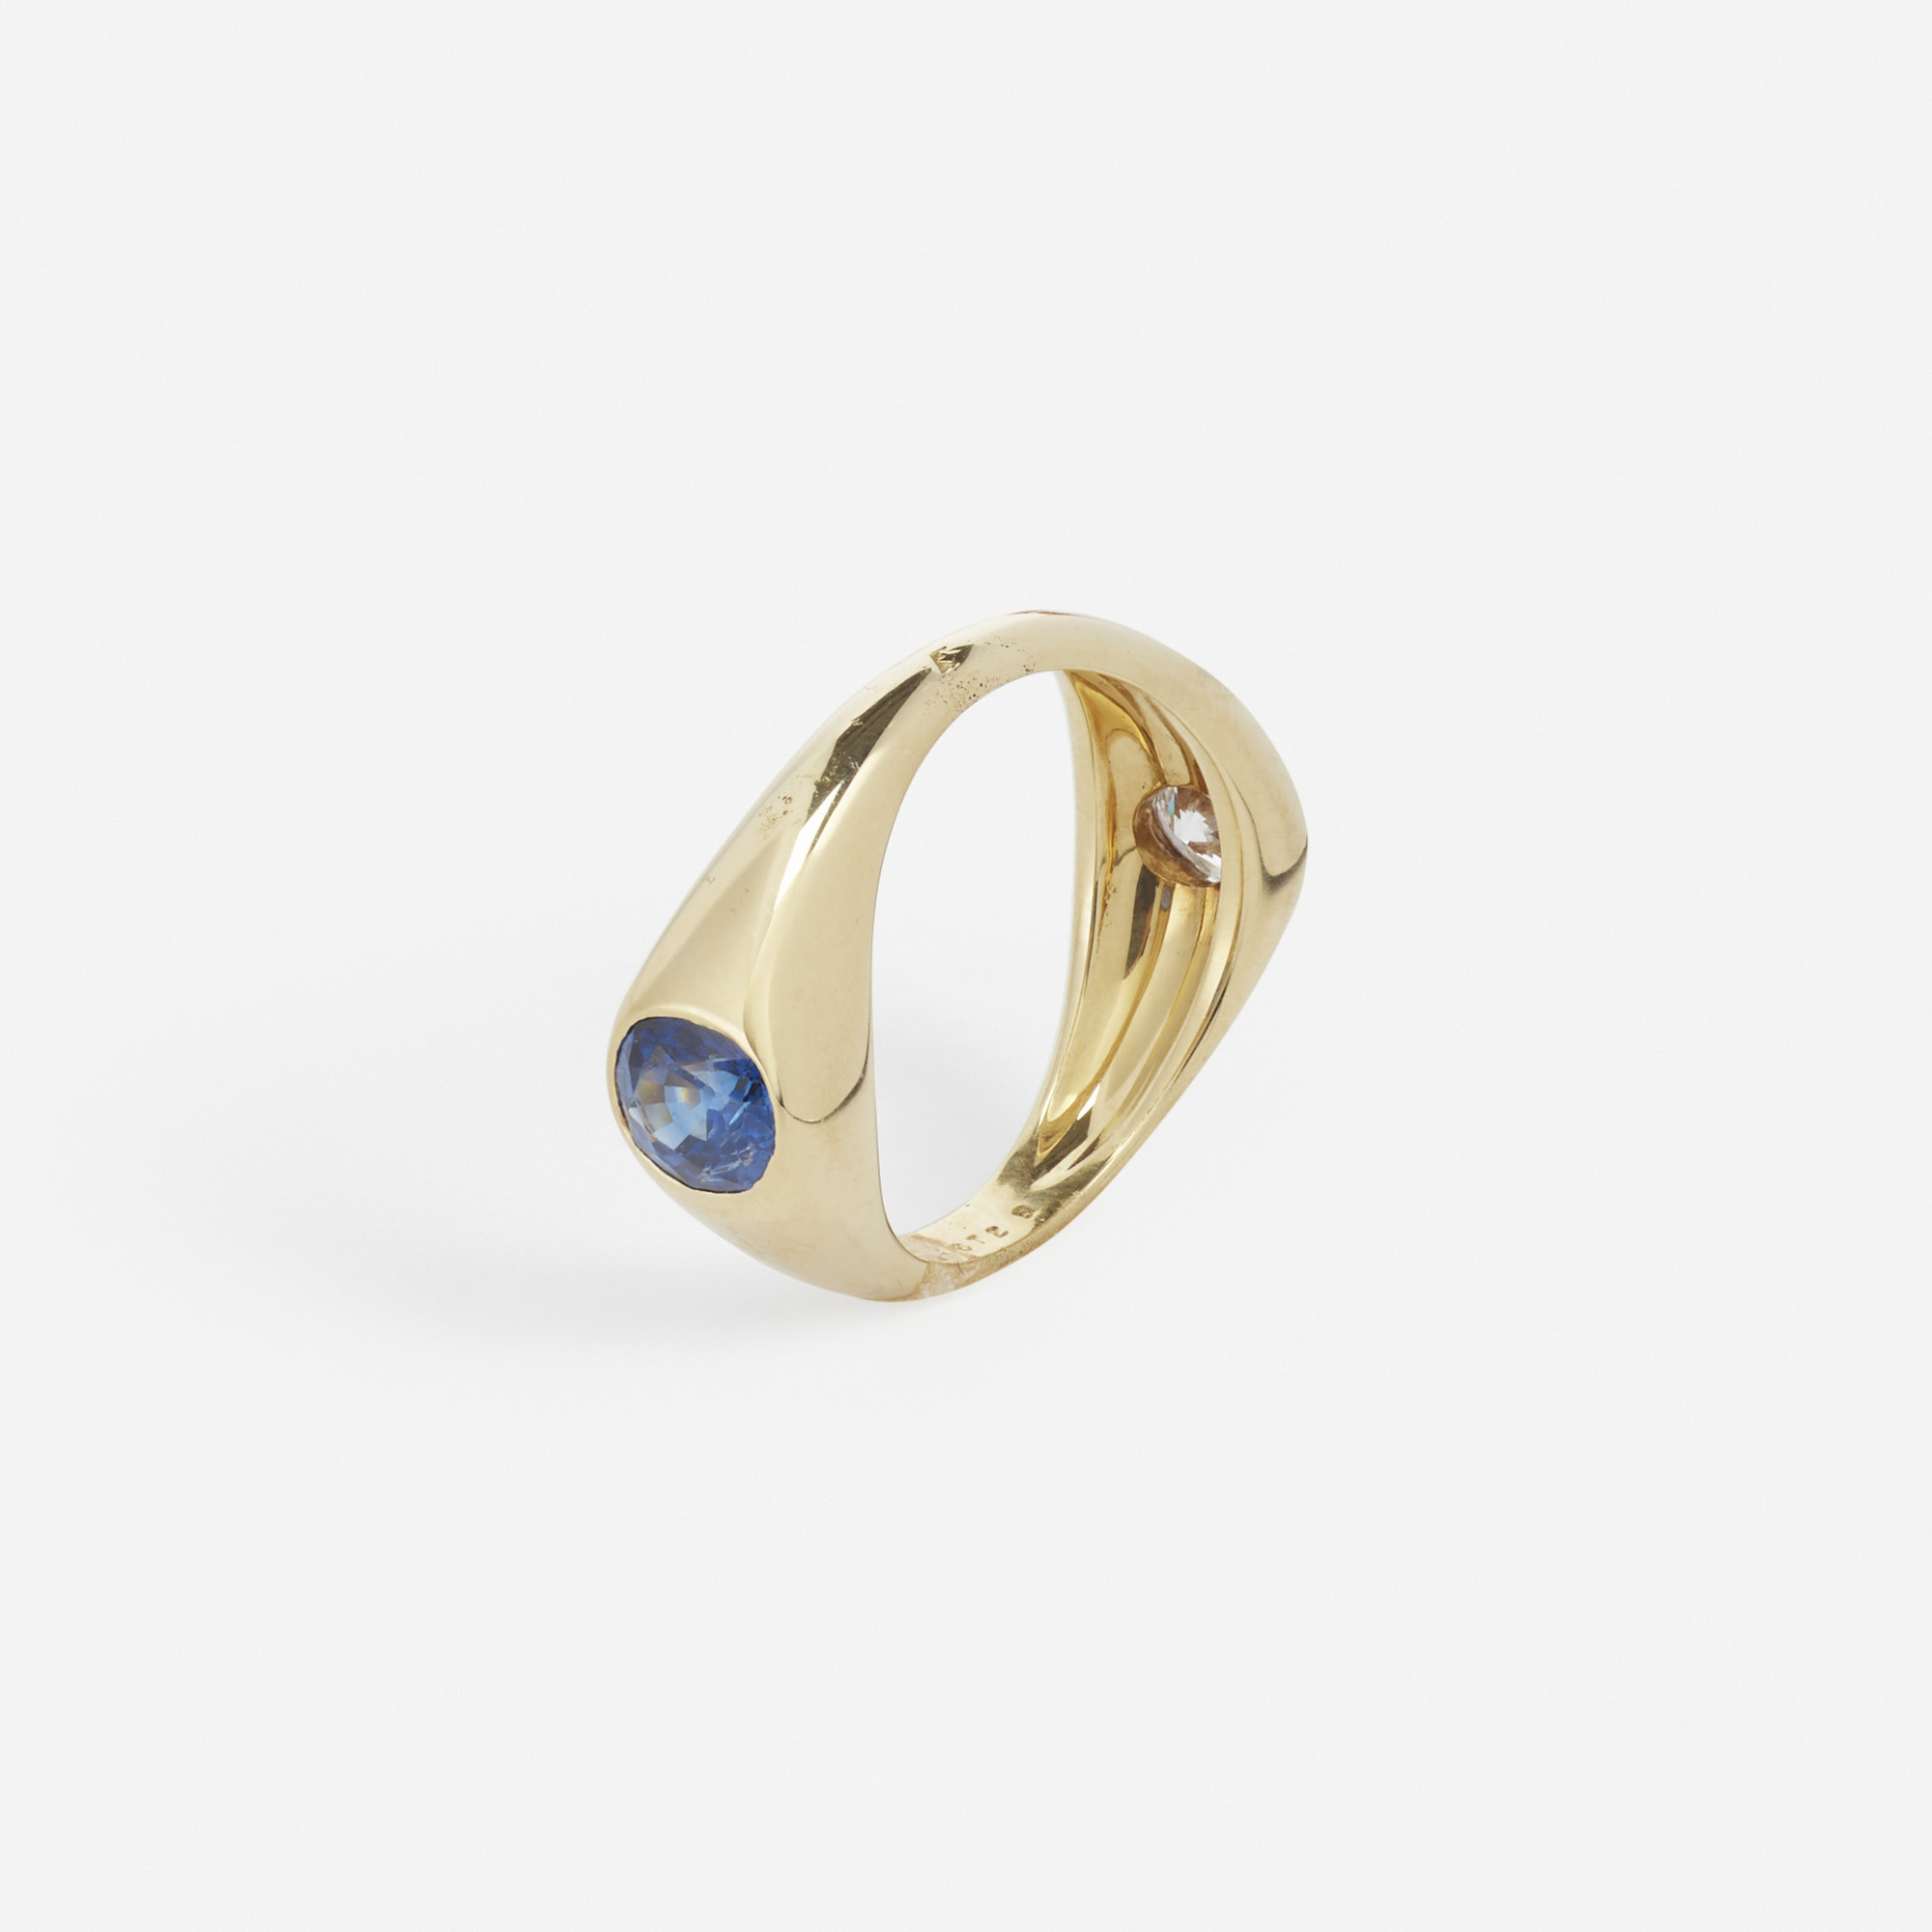 174: Mellerio / A gold, saphhire and diamond ring (2 of 2)